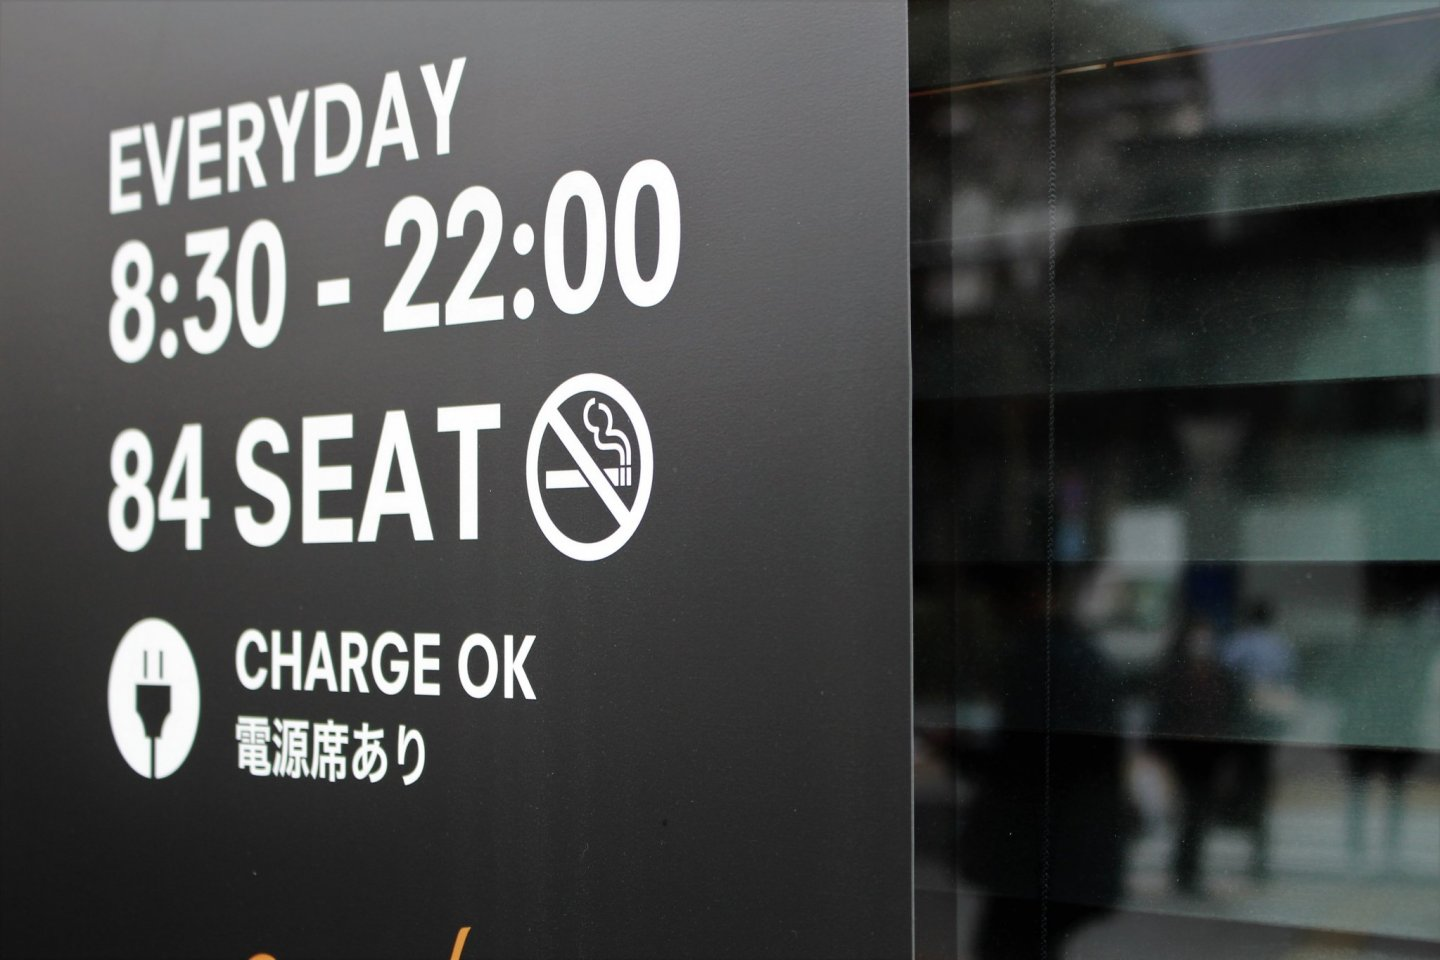 Most restaurants in Tokyo are now smoke-free